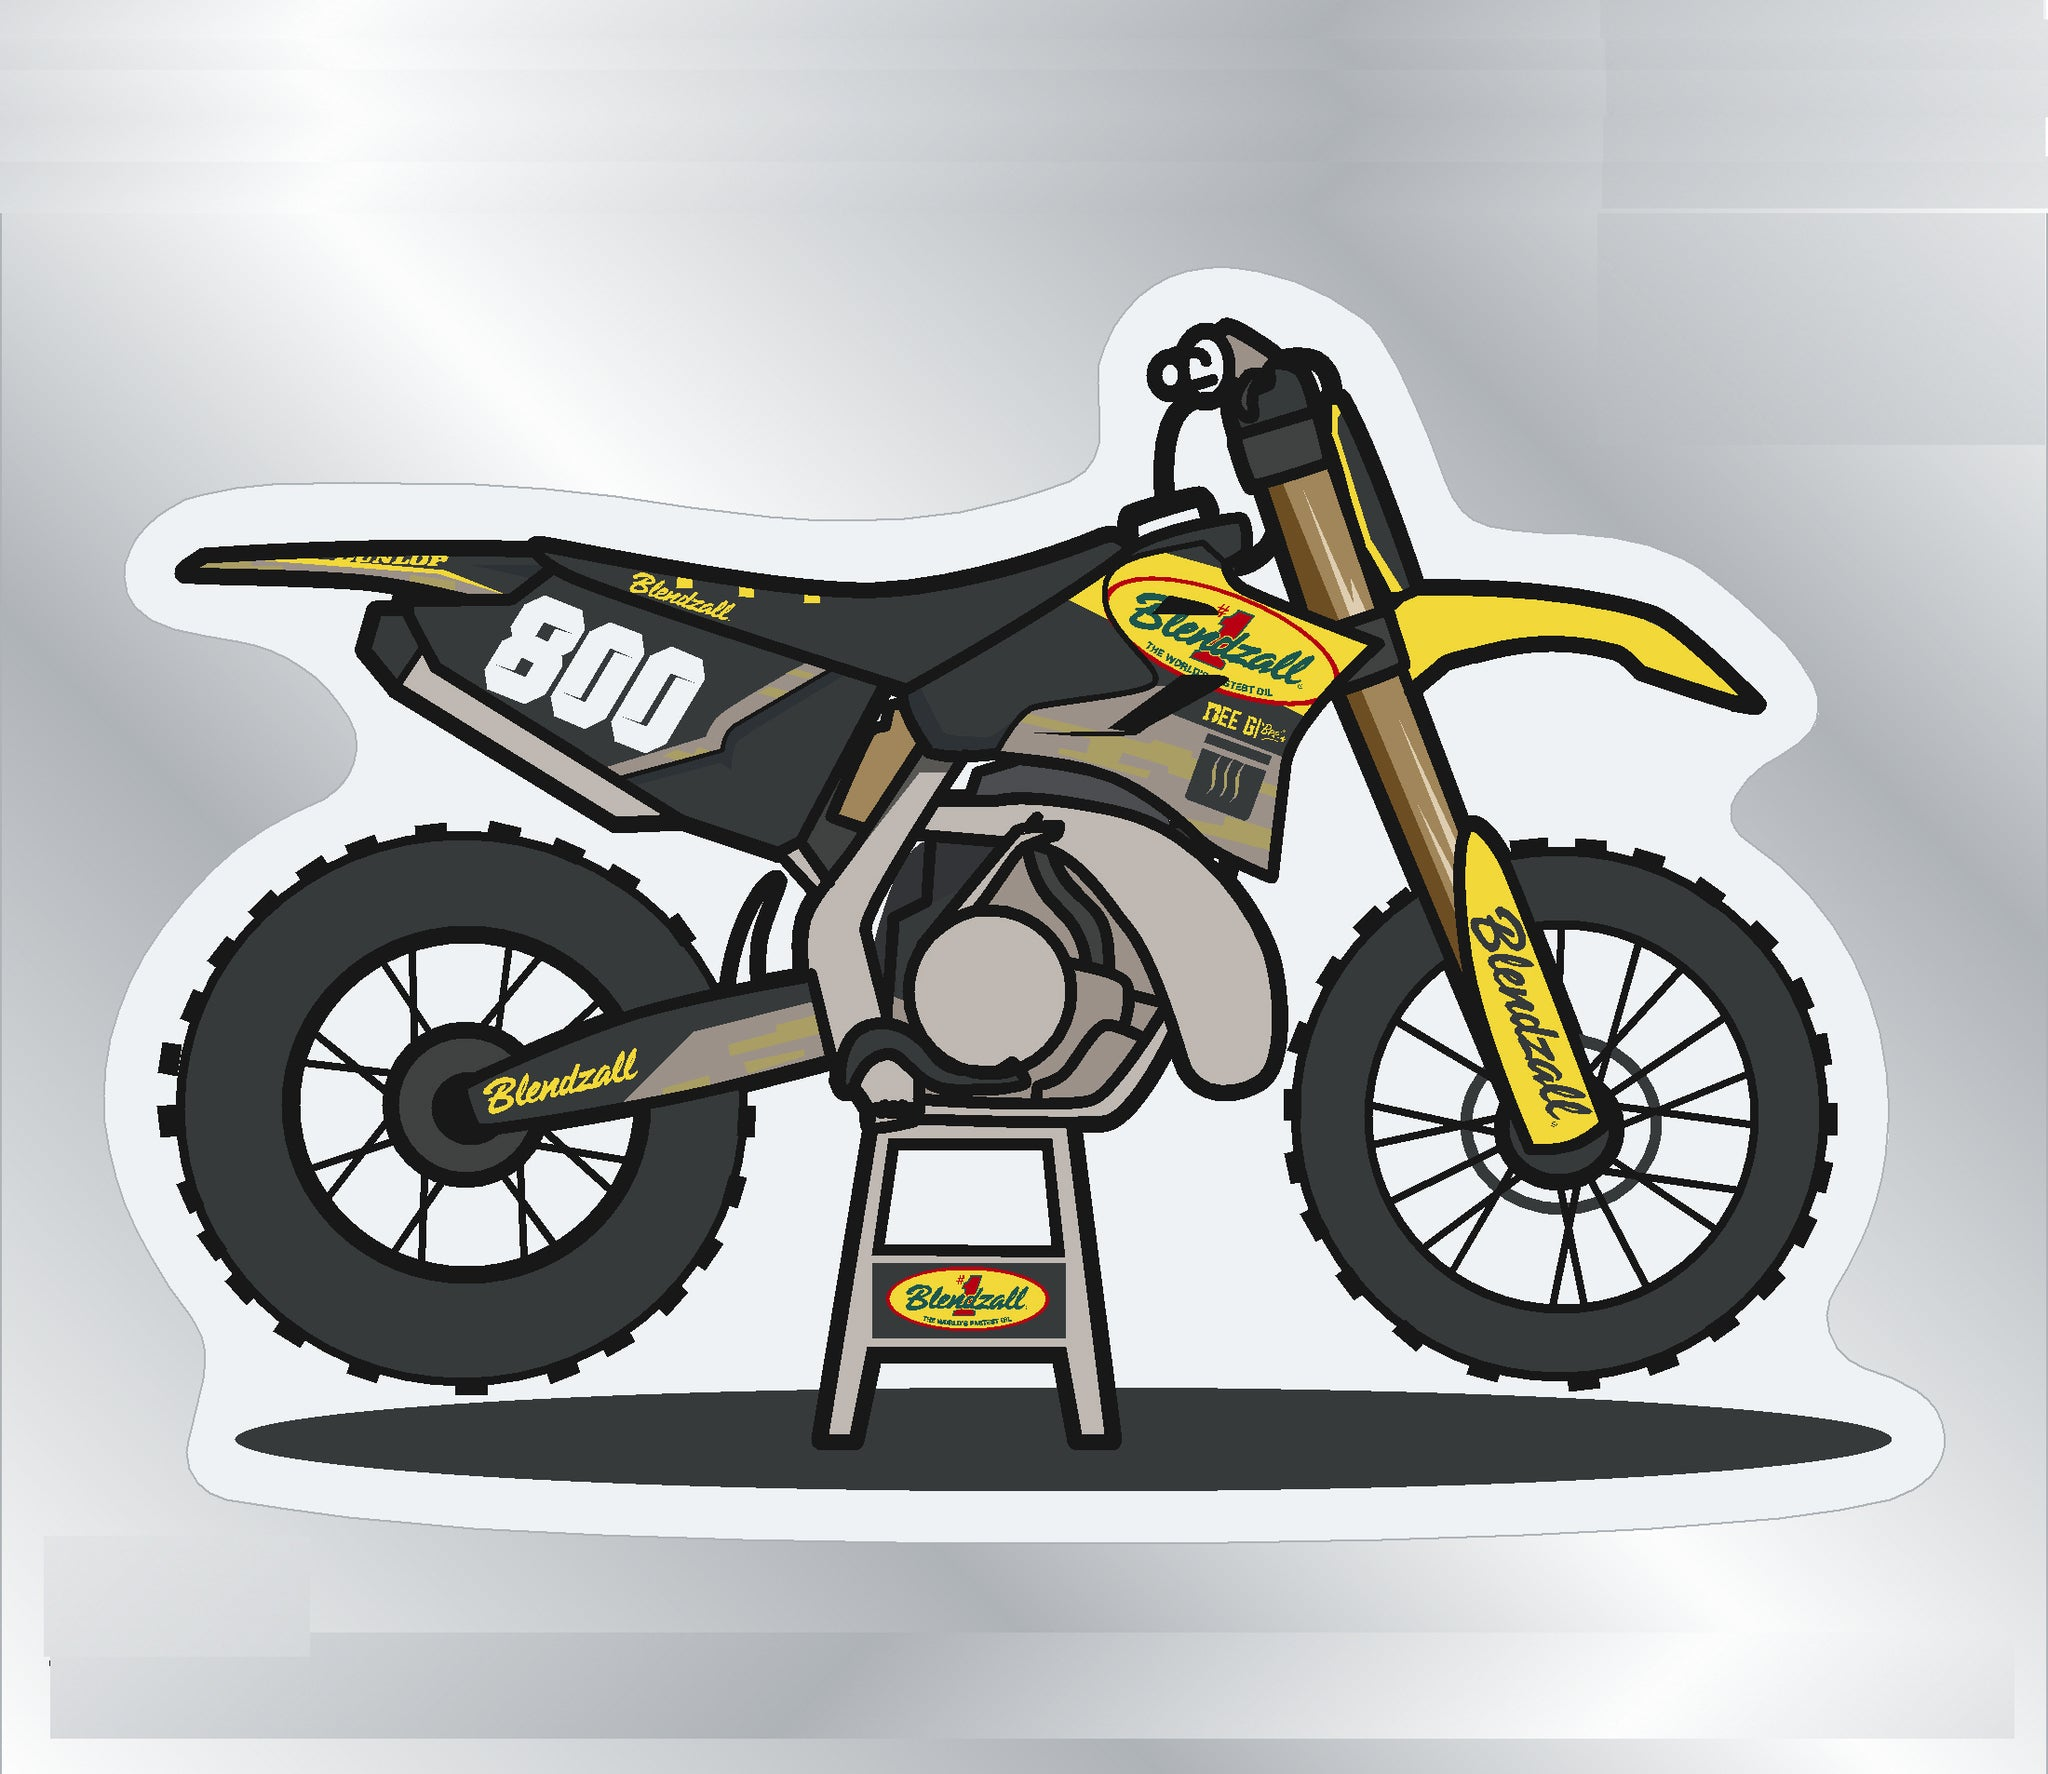 Blendzall bike sticker